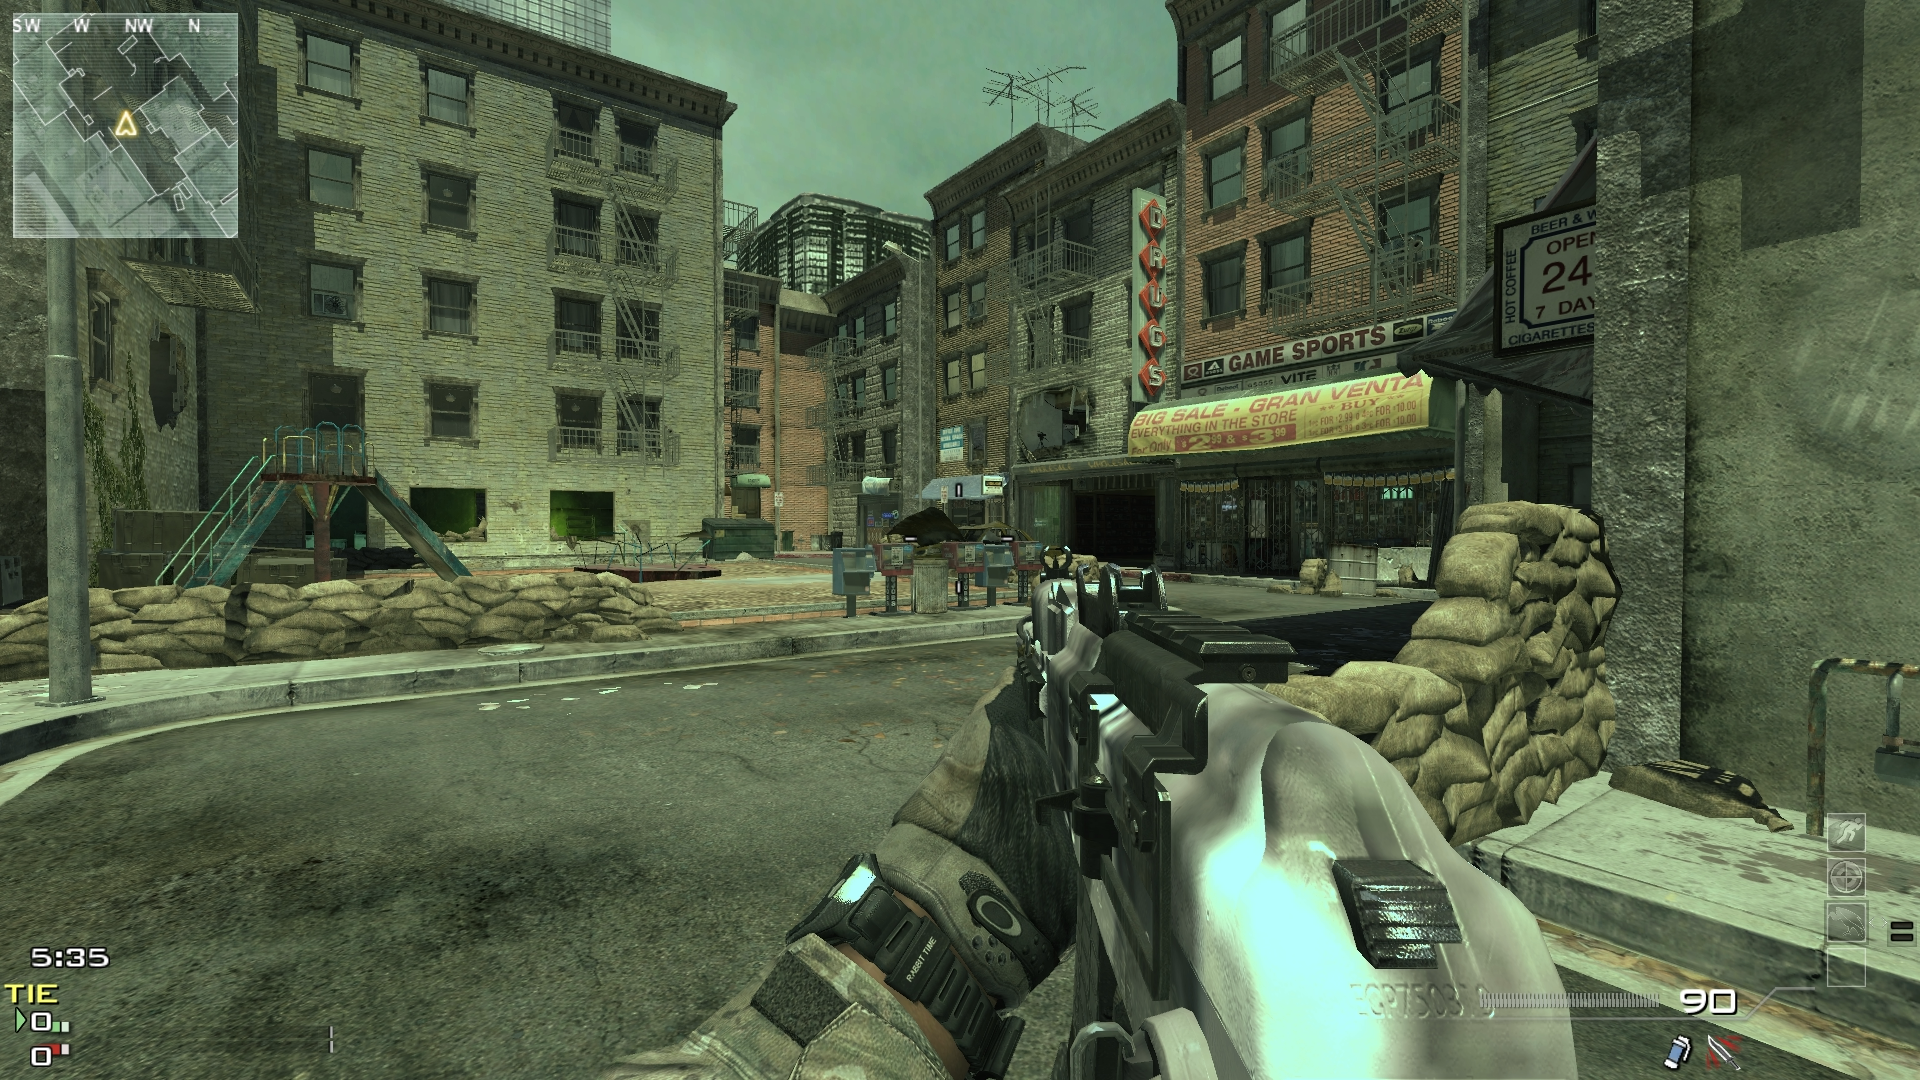 Skidrow and AK74u in MW3